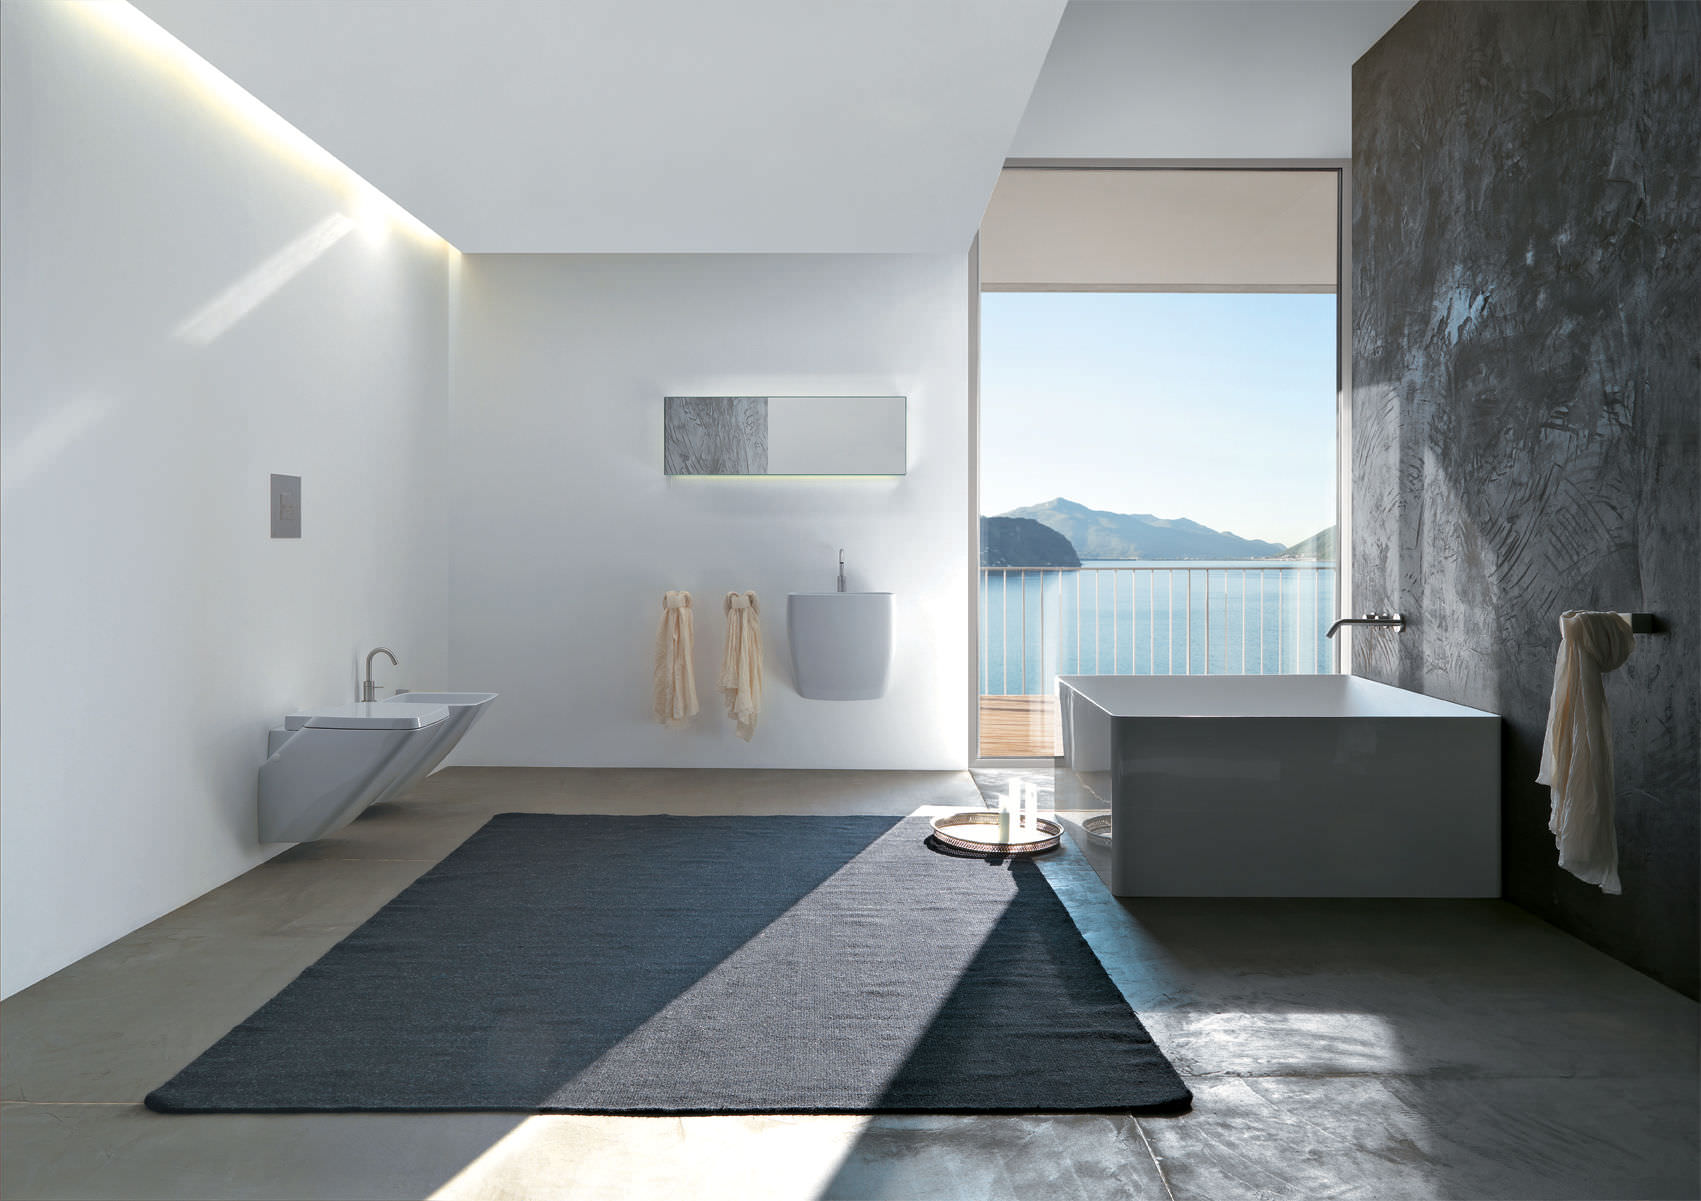 ideas-bathroom-resplendent-modern-false-ceiling-light-over-vanity-as-well-as-black-bathroom-rug-also-square-bathtub-added-grey-gloss-ceramic-wall-tile-in-open-views-modern-bathroom-designs-goodly-squ